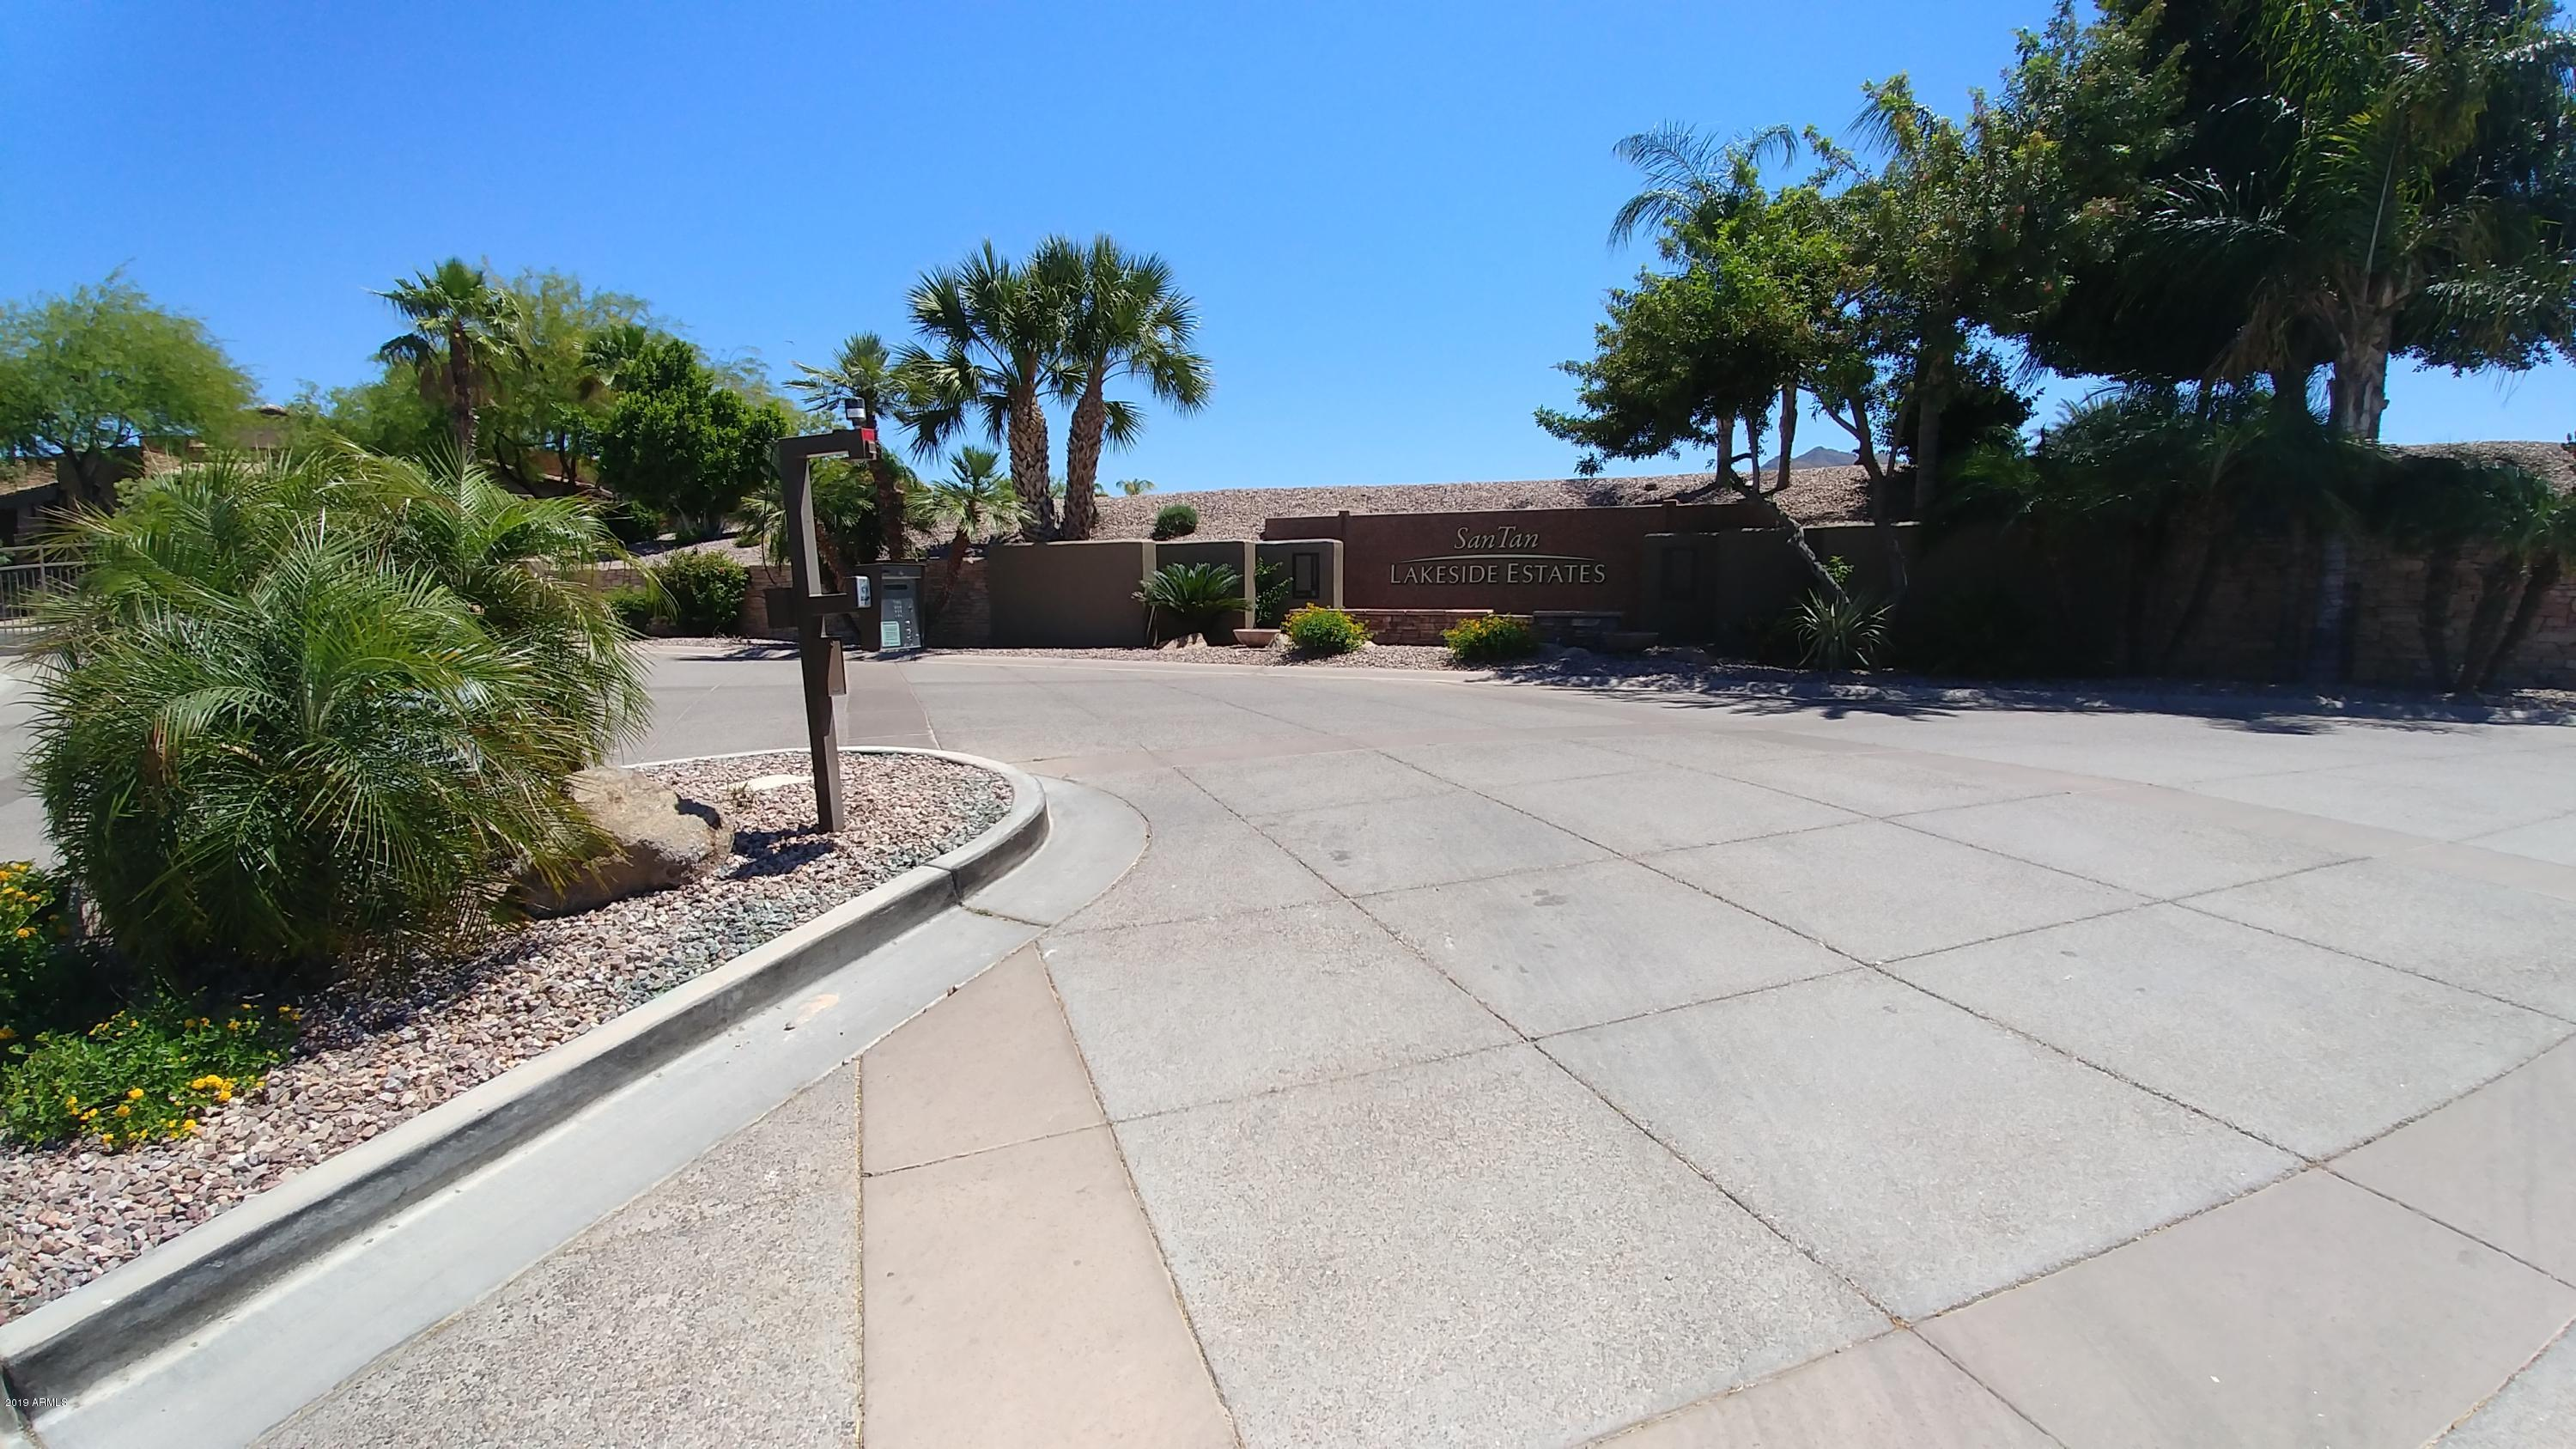 MLS 5924944 7462 S MCCORMICK Way, Queen Creek, AZ 85142 Queen Creek AZ Luxury